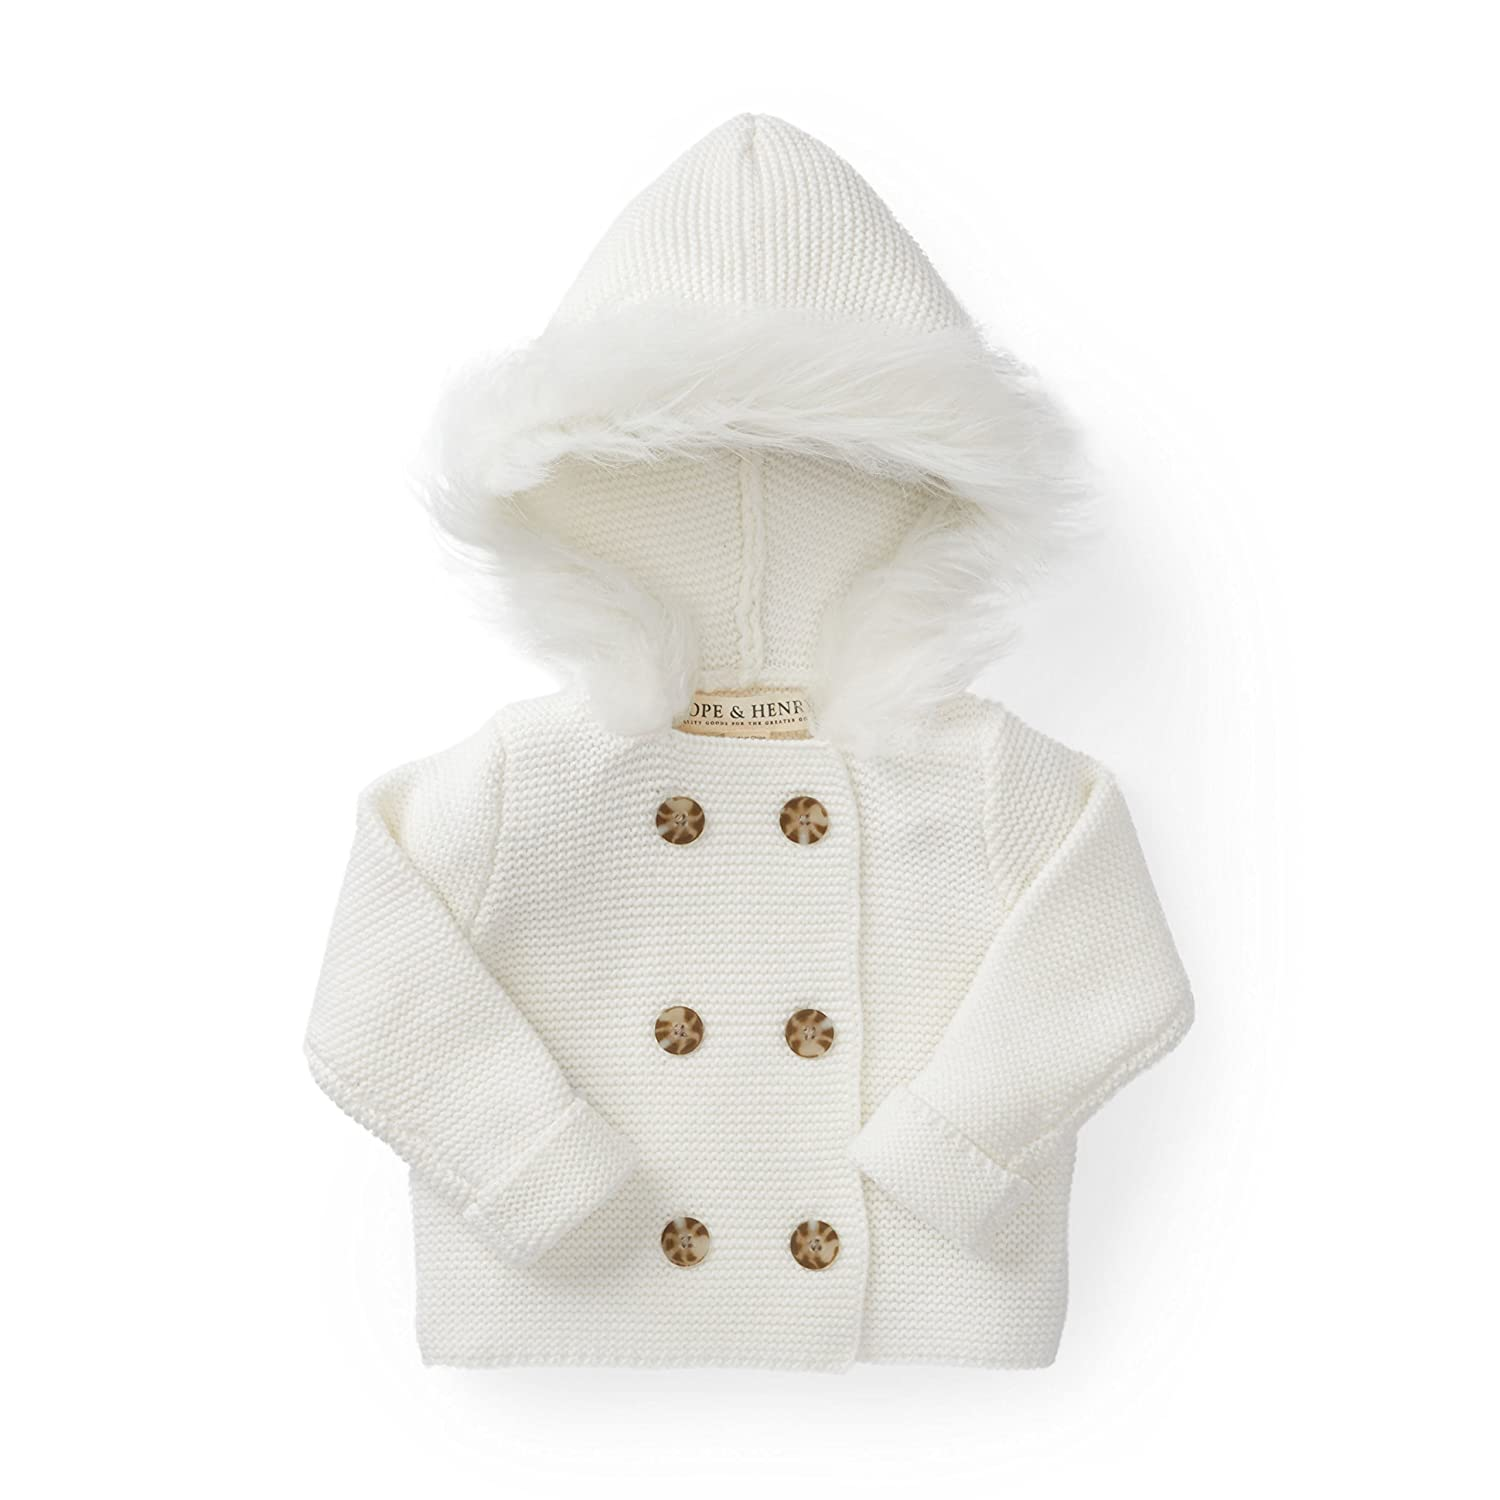 Hope & Henry Layette Sweater with Faux Fur Hood Made with Organic Cotton